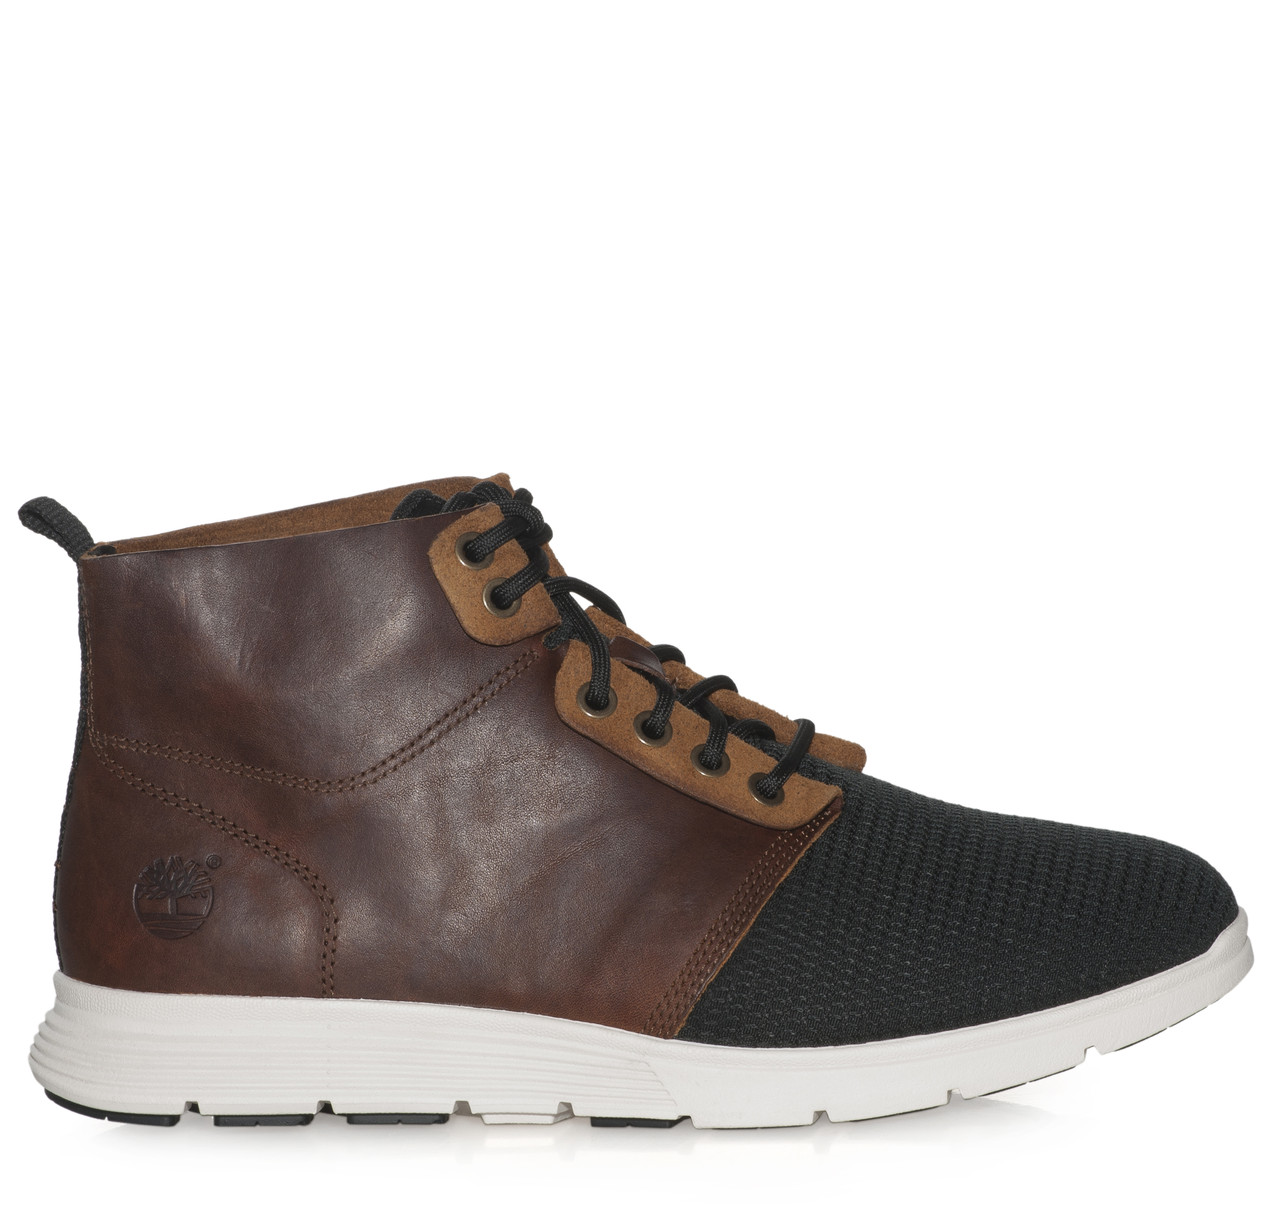 499d8d8acc6 Ανδρικά > Παπούτσια > Μποτάκια / Μπότες Red Wing COOPER MOC ...